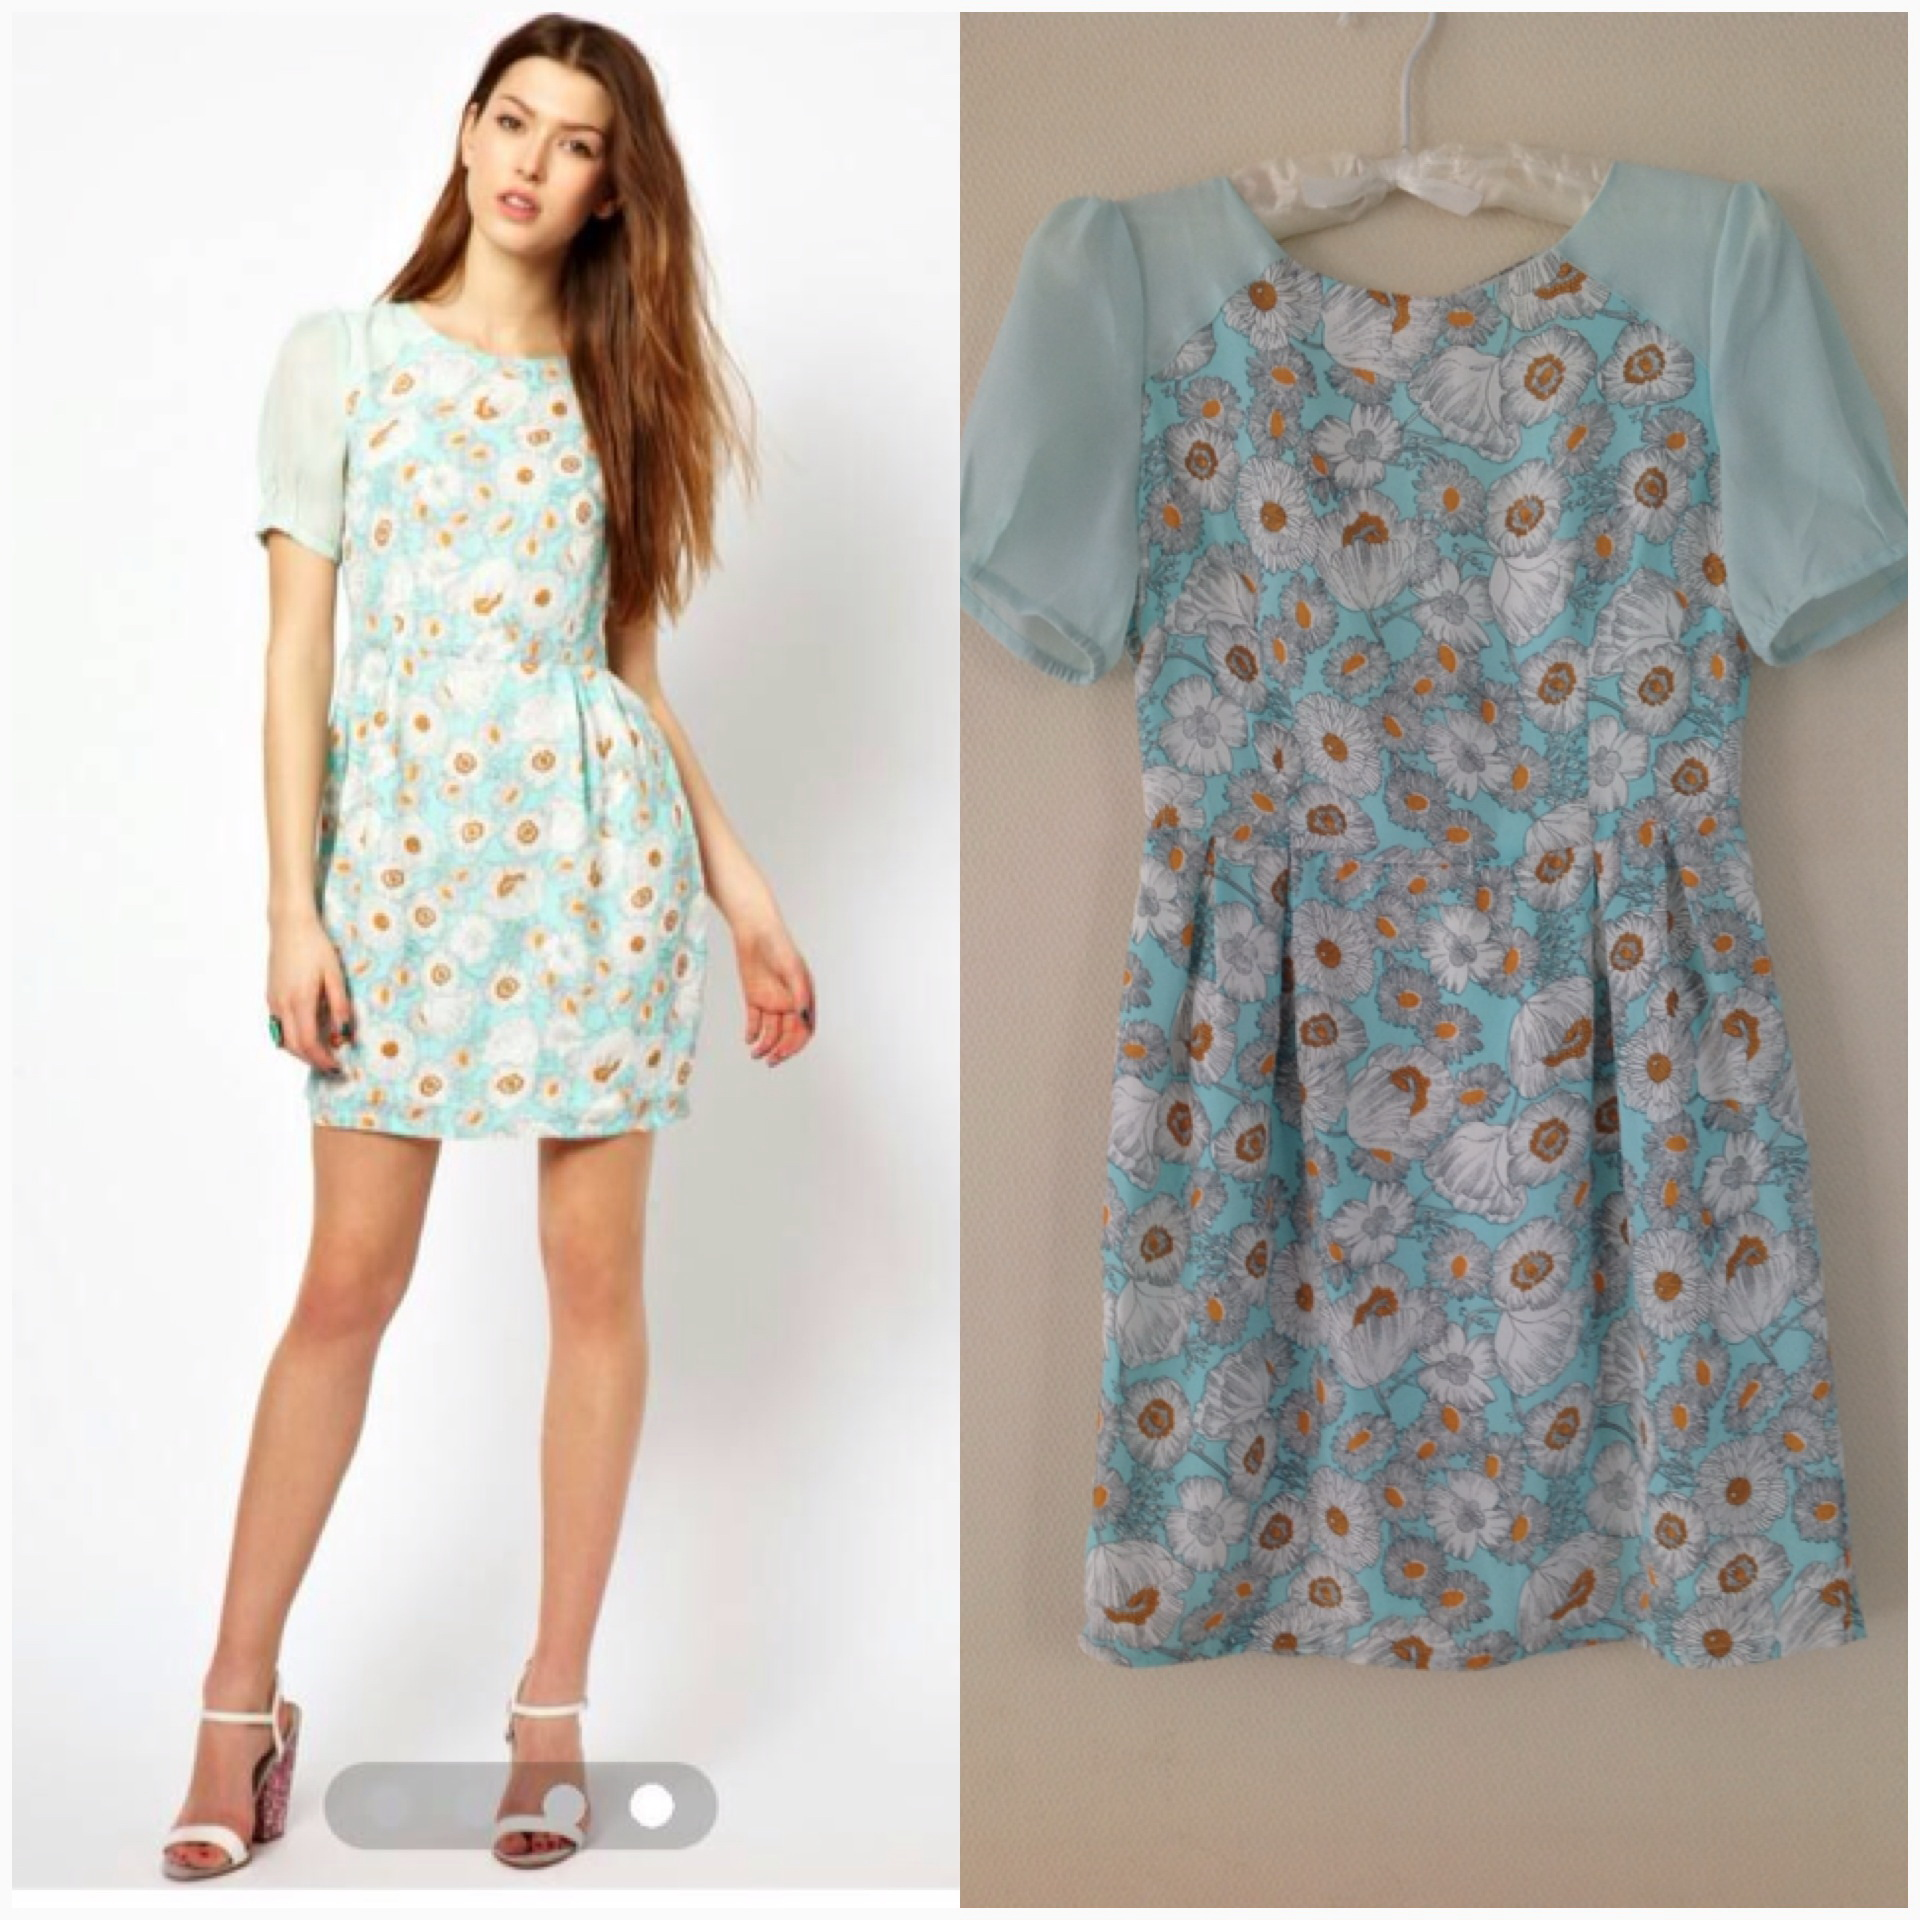 Asos by Max C floral Dress Size uk8-10